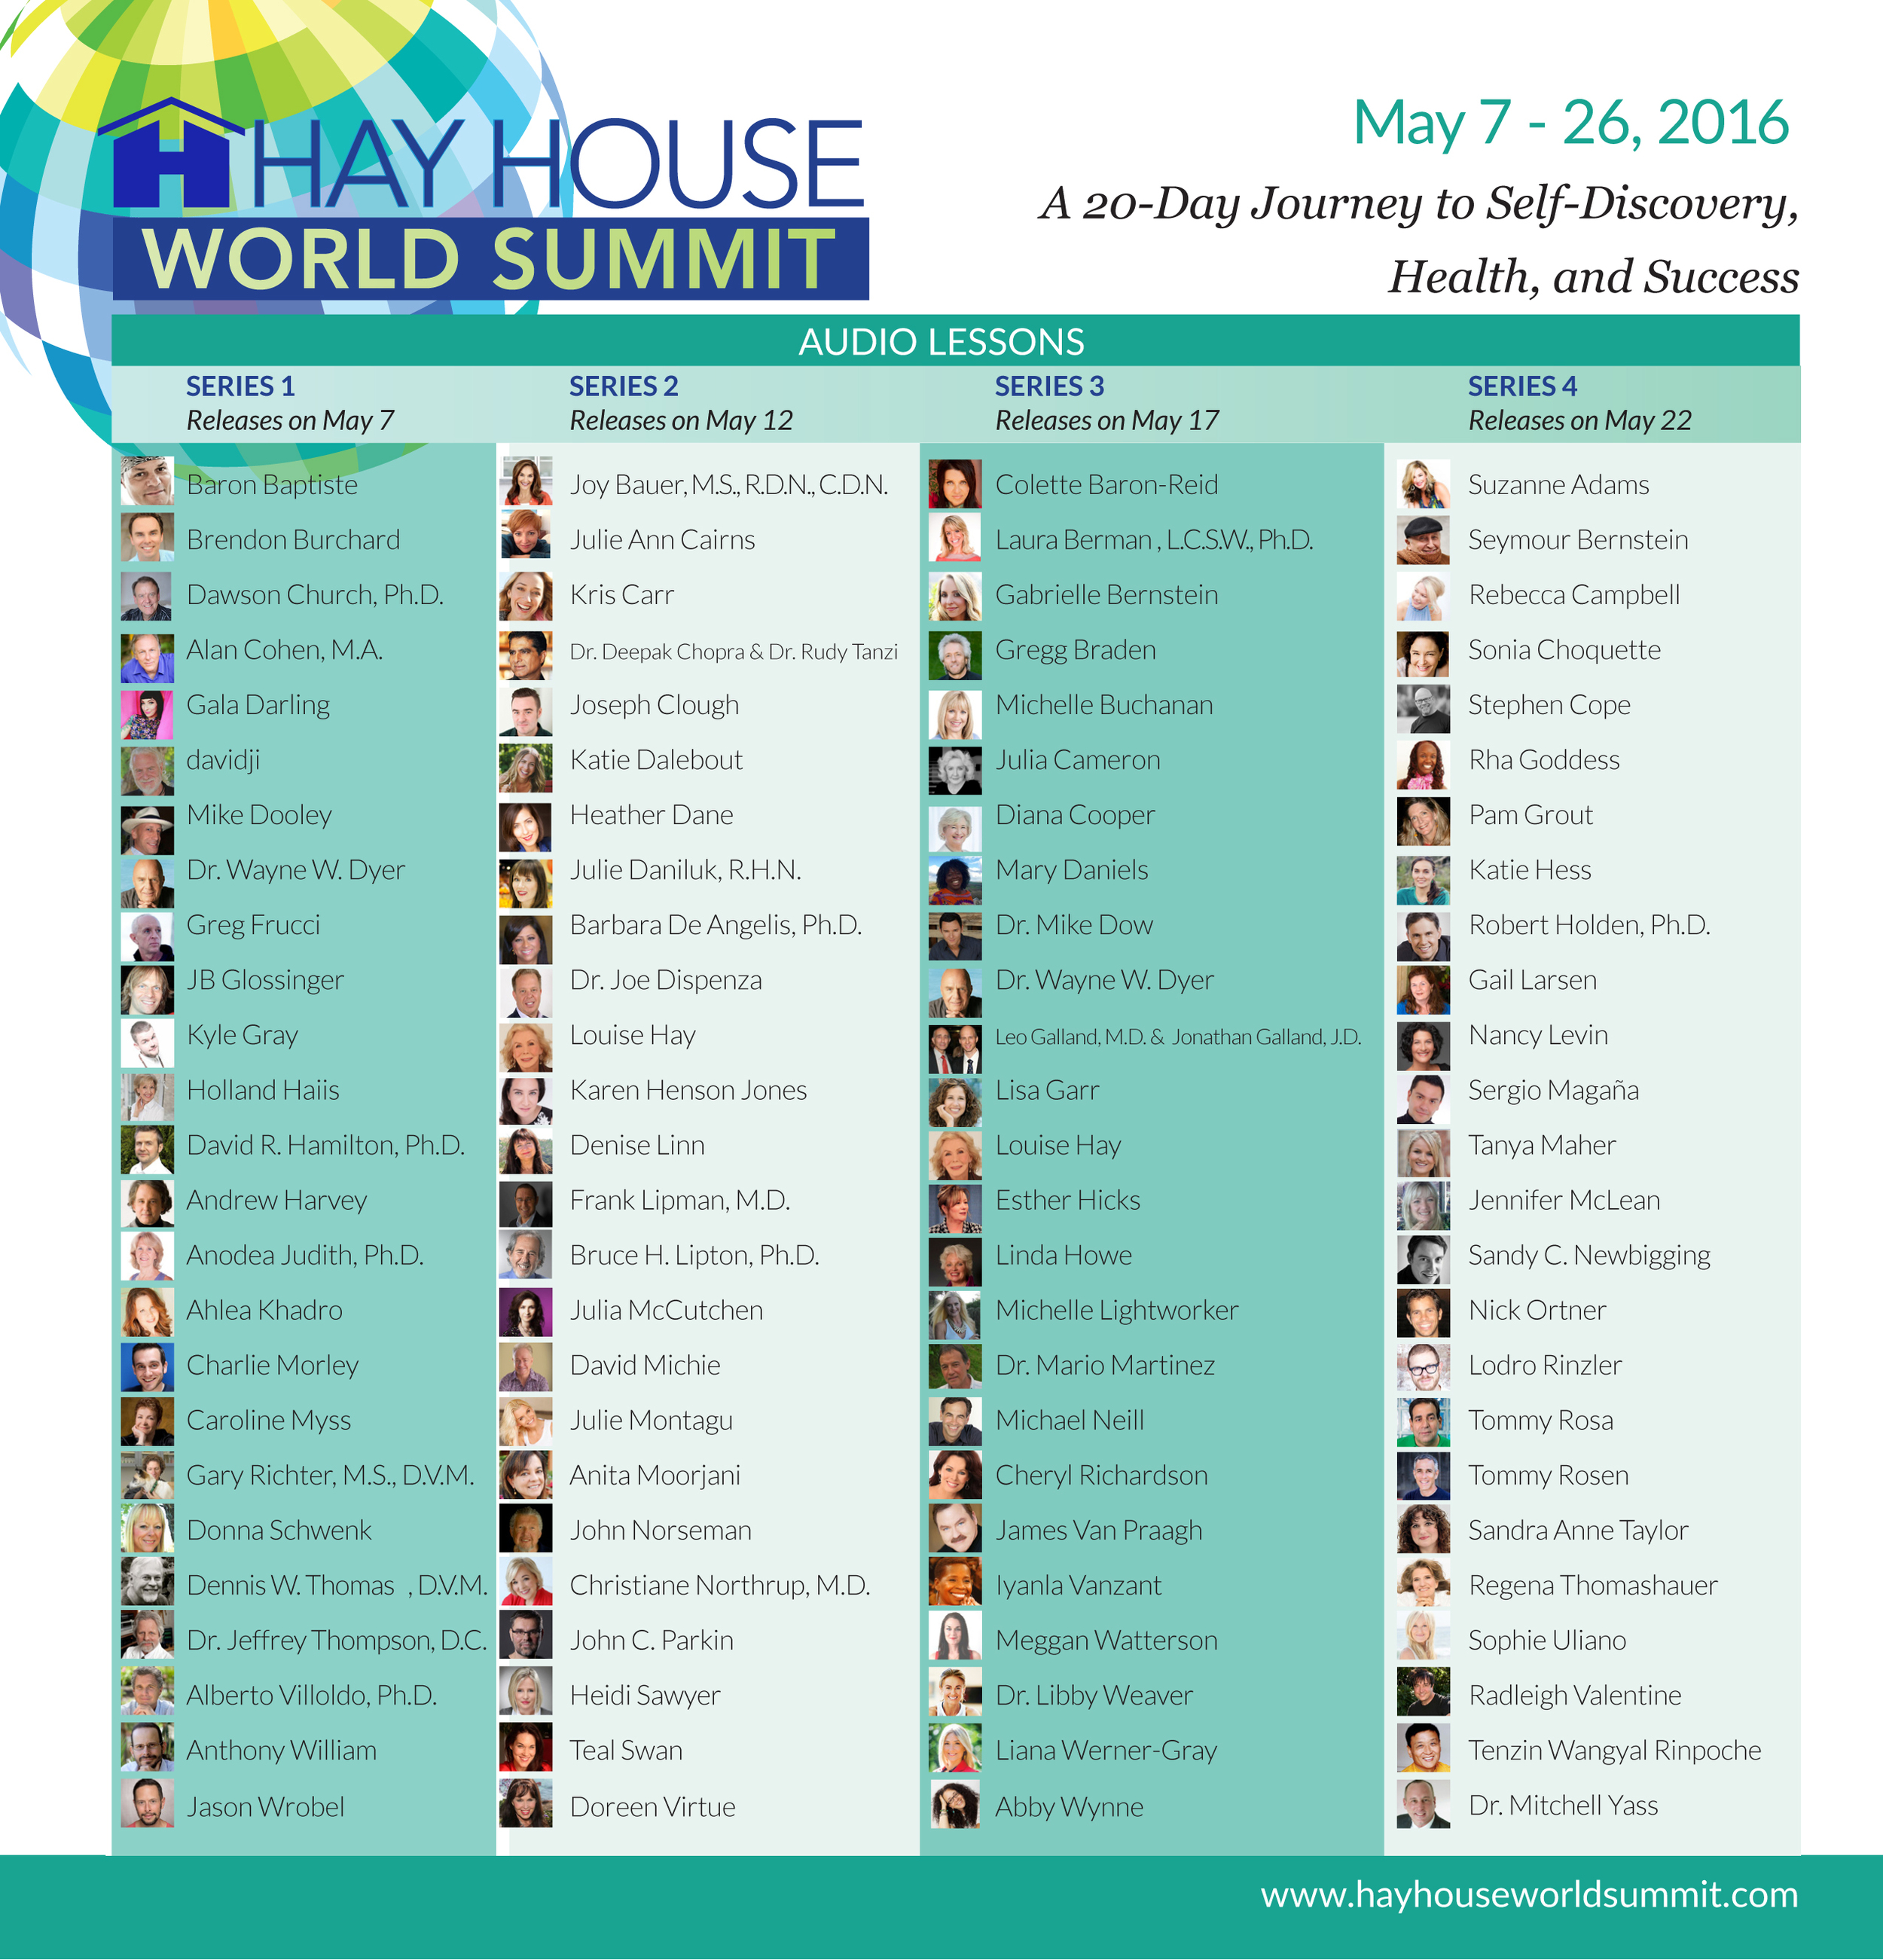 During Series 1 which begins on May 7th, count down to the ninth person. That's me right under Dr. Wayne Dyer! And check out all the others!